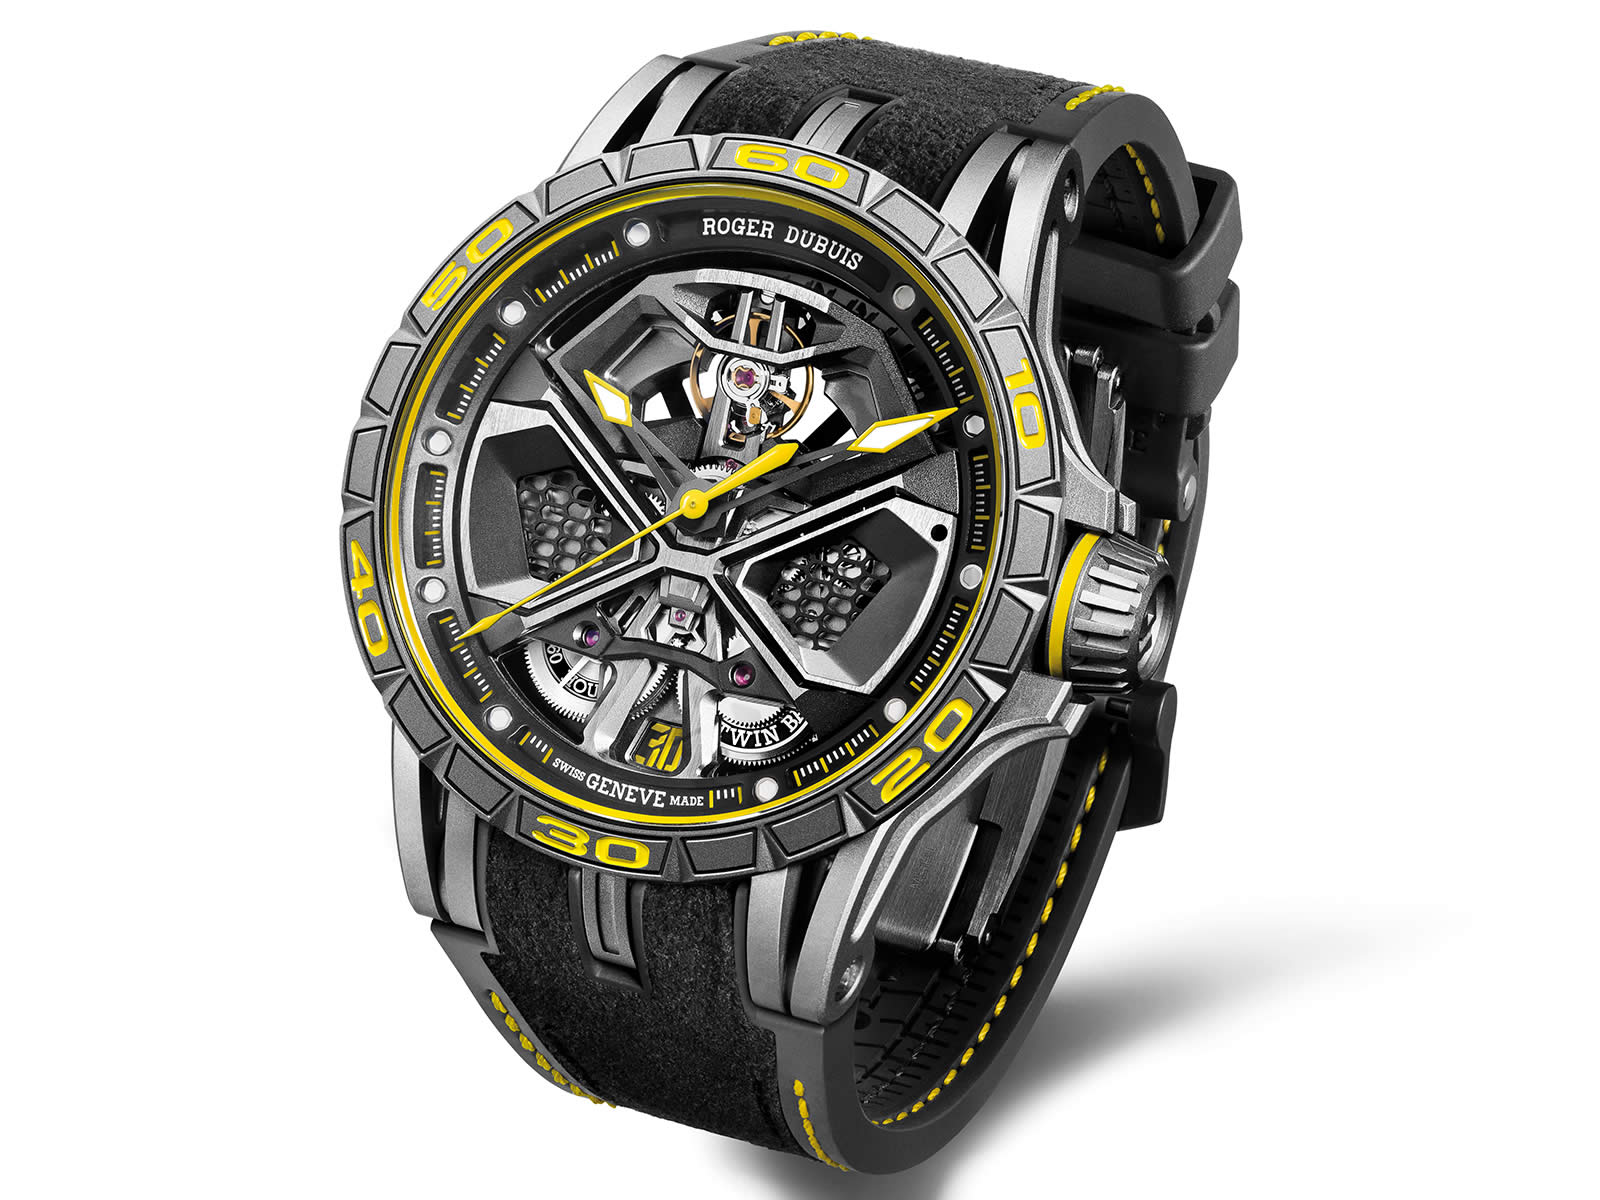 rddbex0792-roger-dubuis-excalibur-huracan-performante-19-.jpg